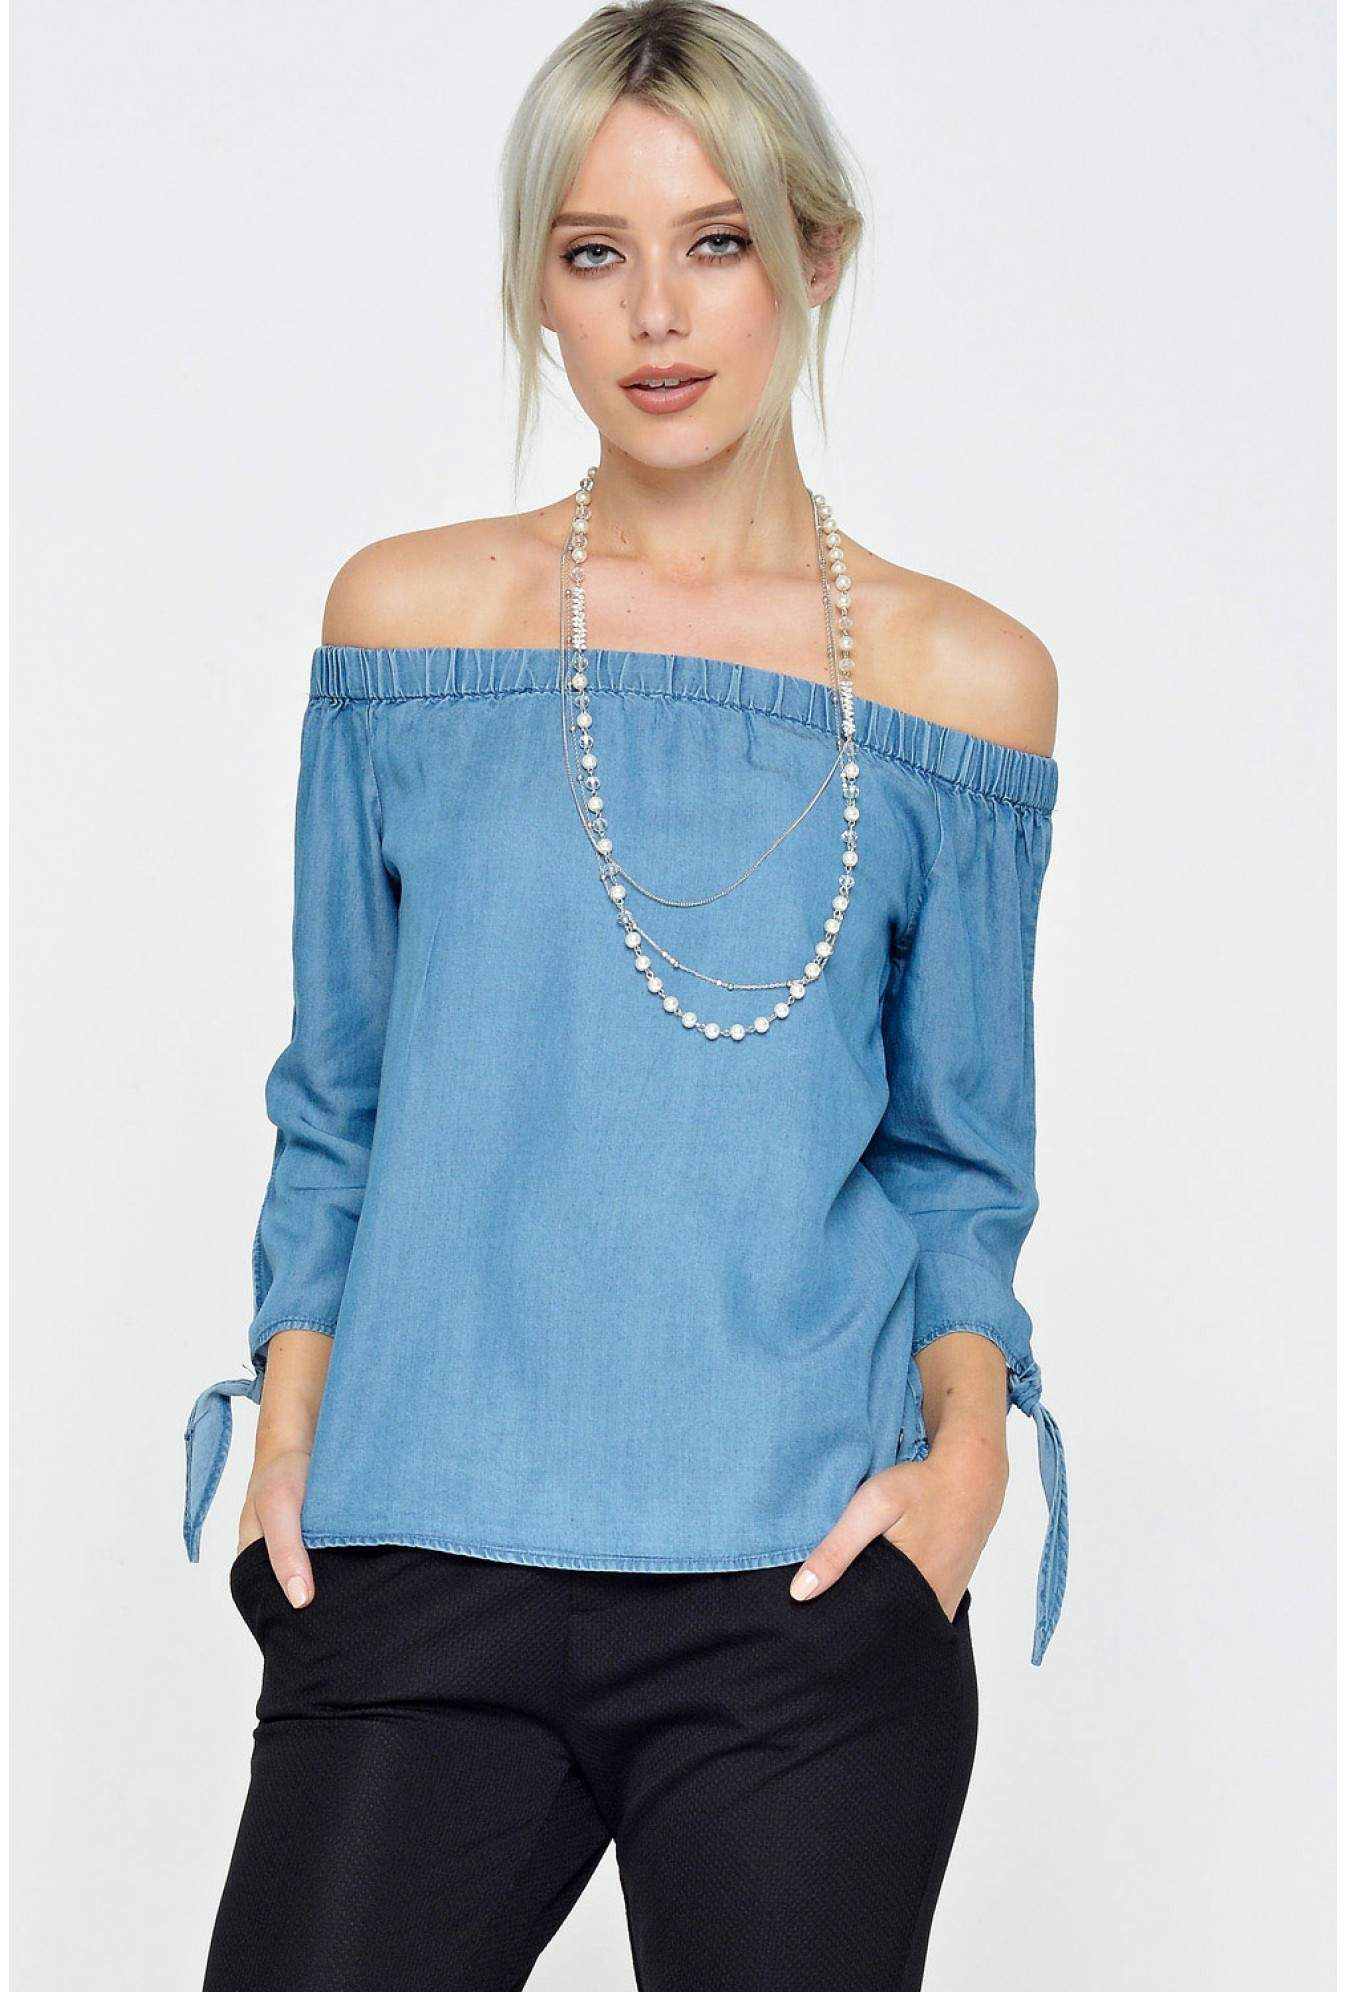 a0c14fbc9a9 Only India 3 4 Off Shoulder Top in Denim Blue